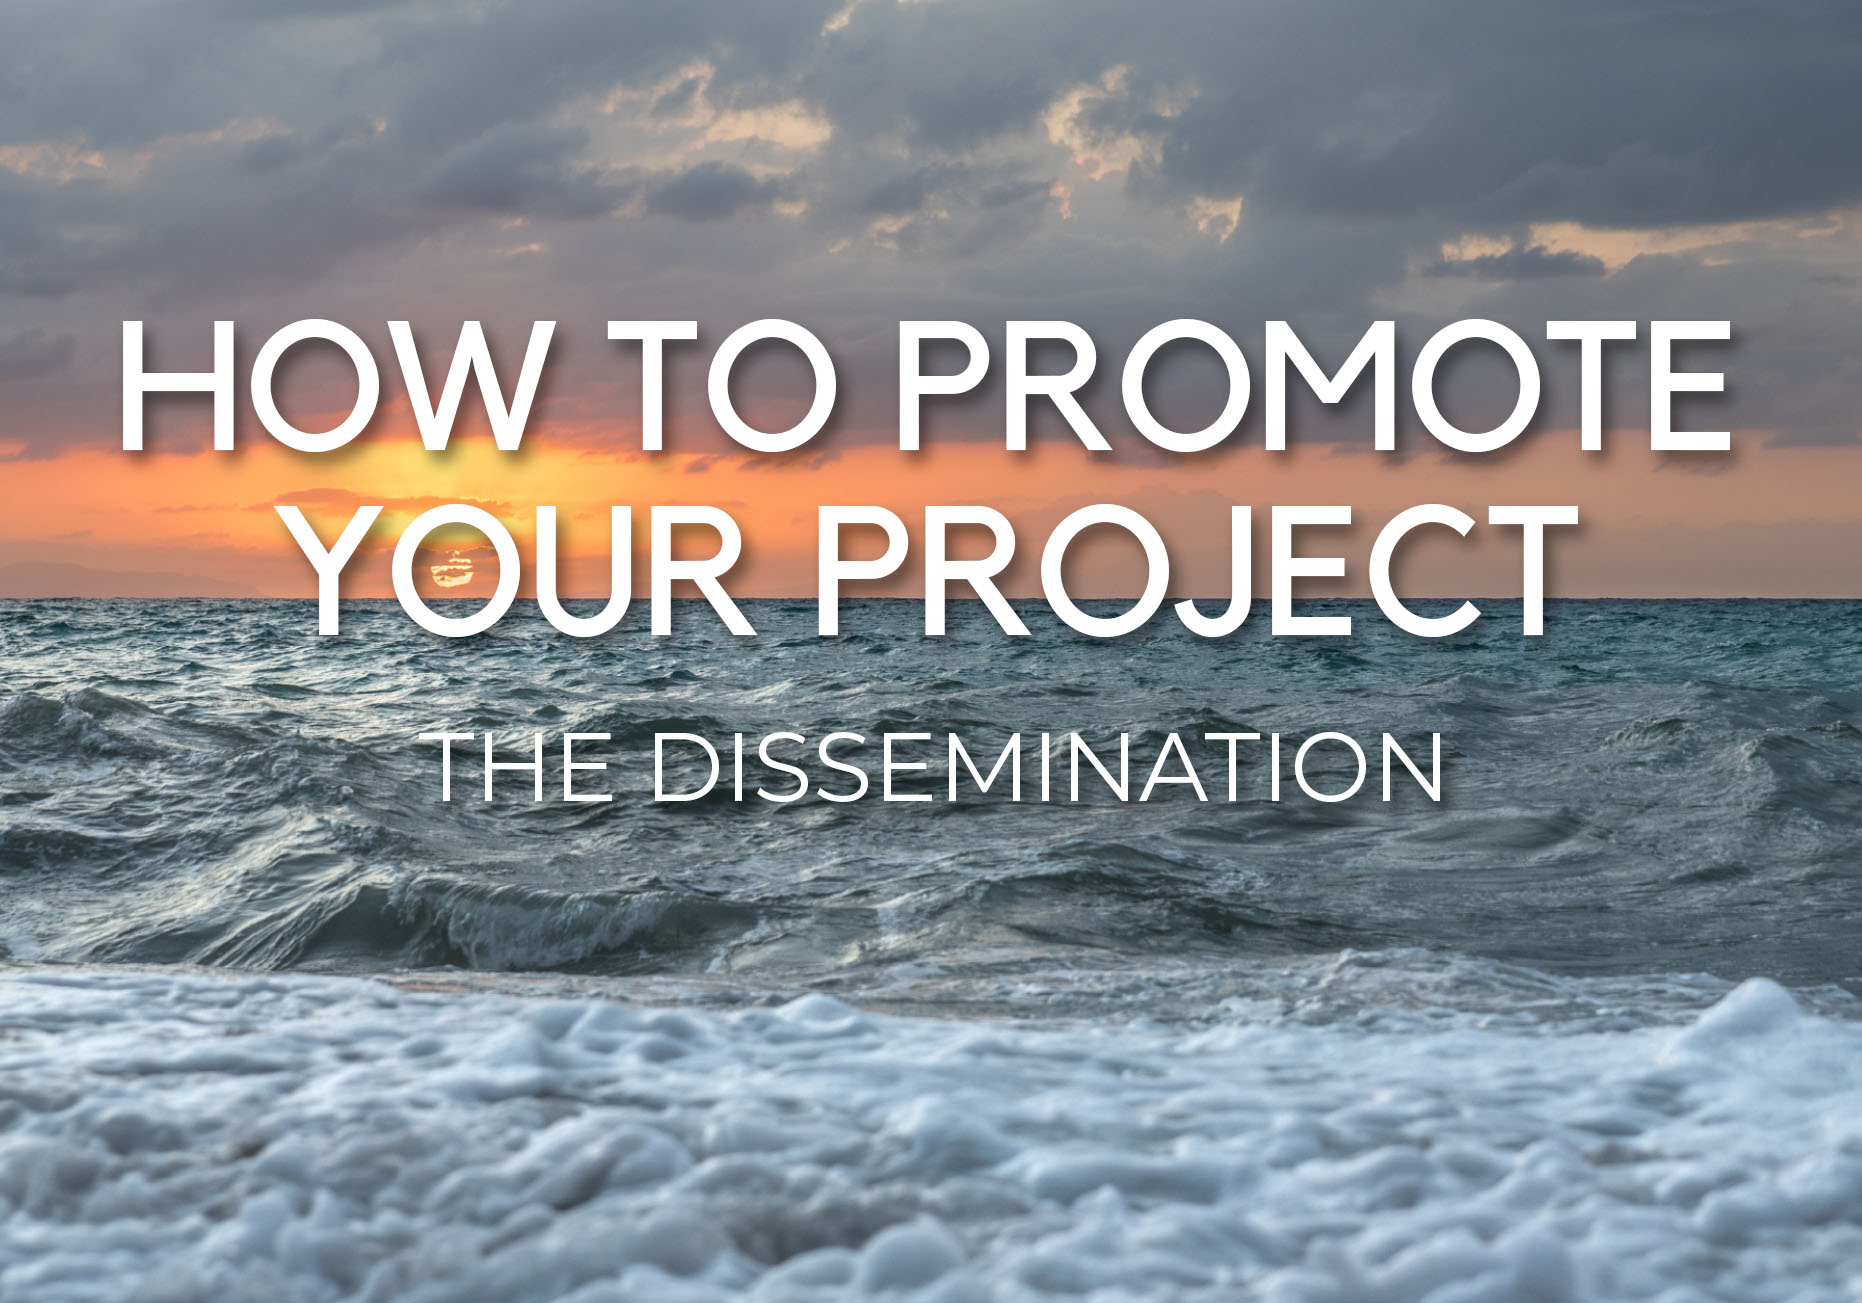 HOW TO PROMOTE YOUR PROJECT – THE DISSEMINATION